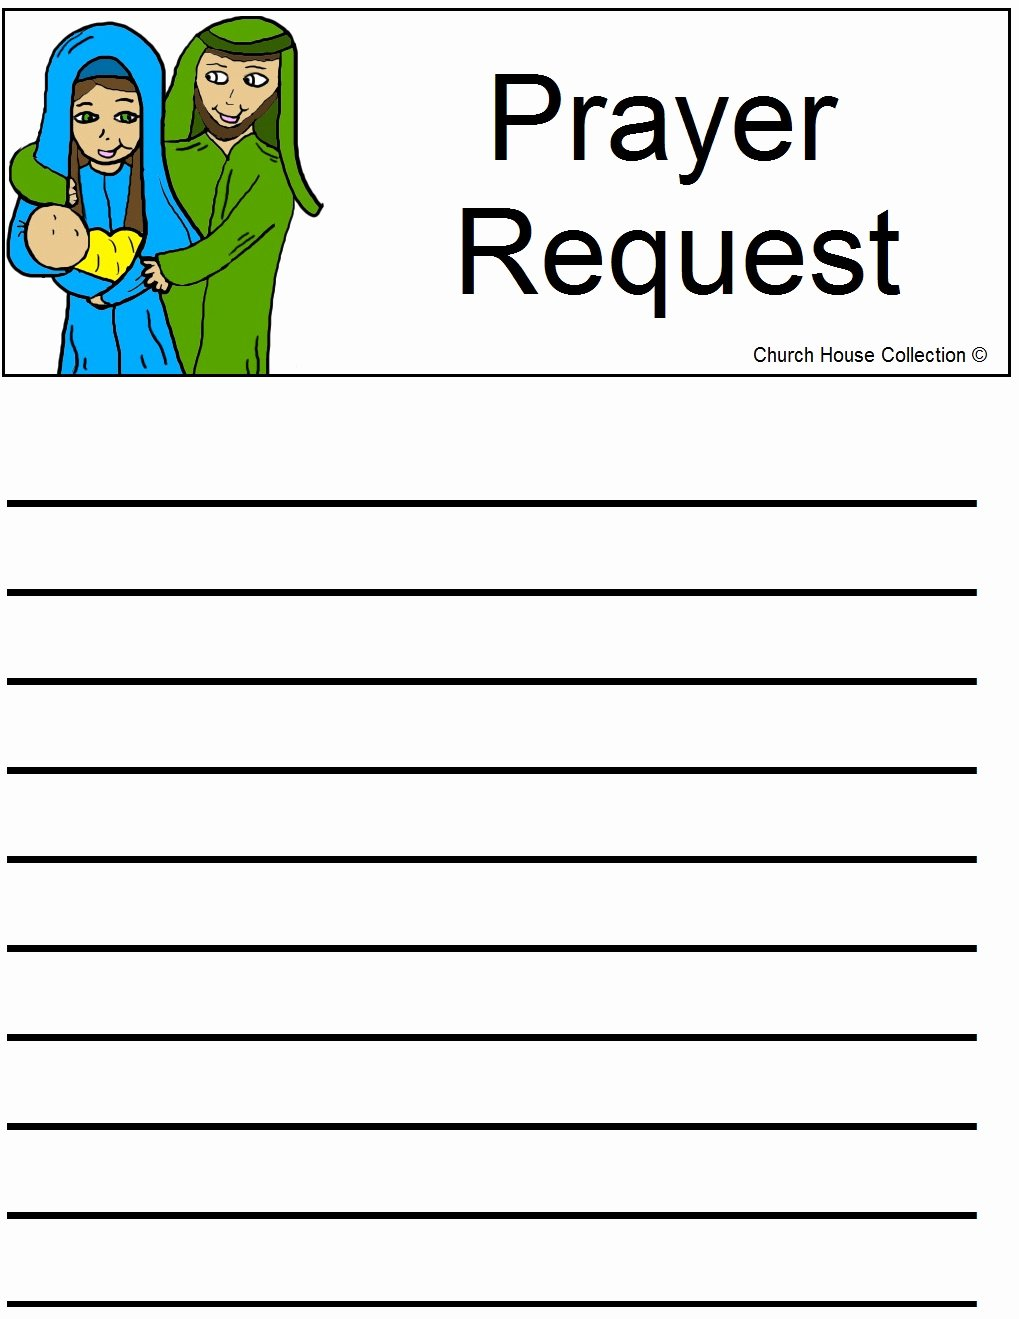 Prayer Request Card Template Luxury Church House Collection Blog Nativity Sunday School Lesson